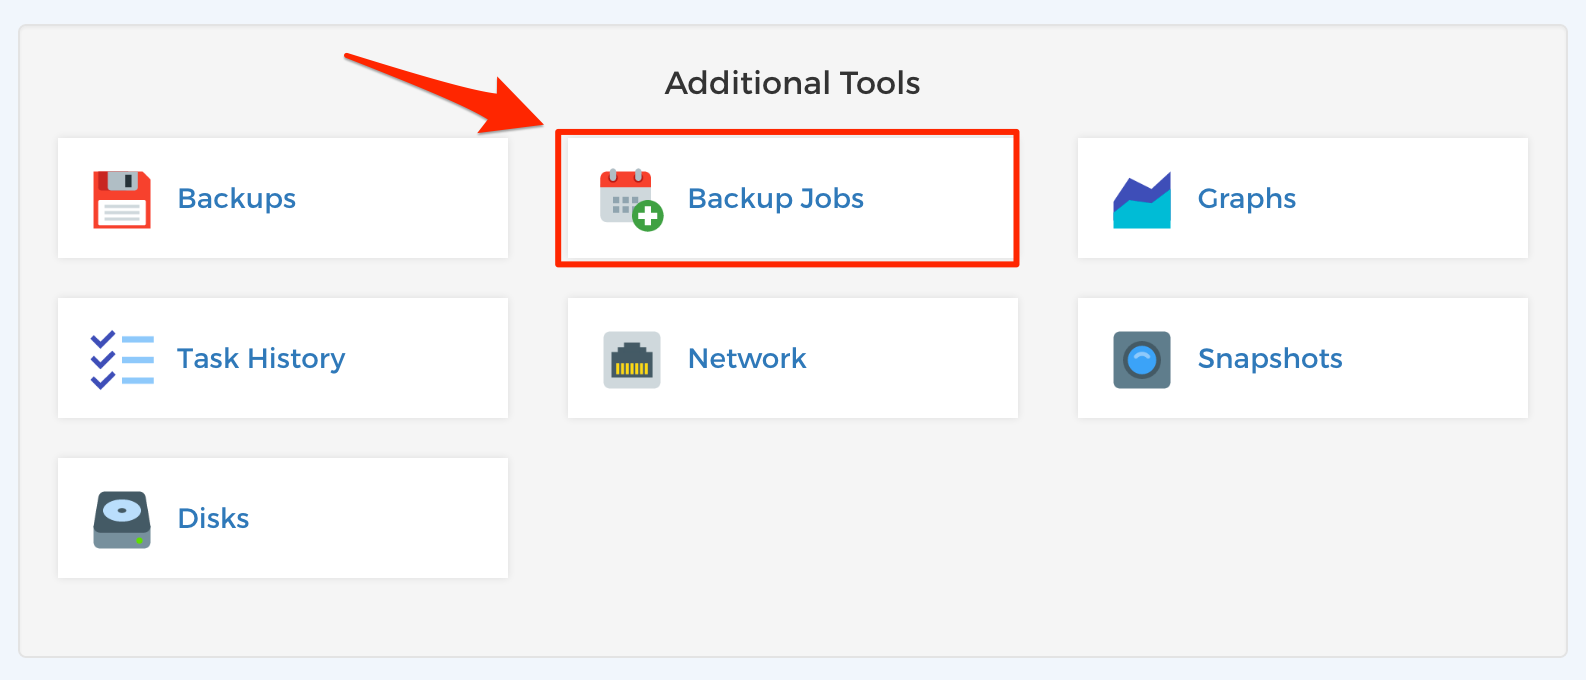 Step 3 - Scheduled Backups